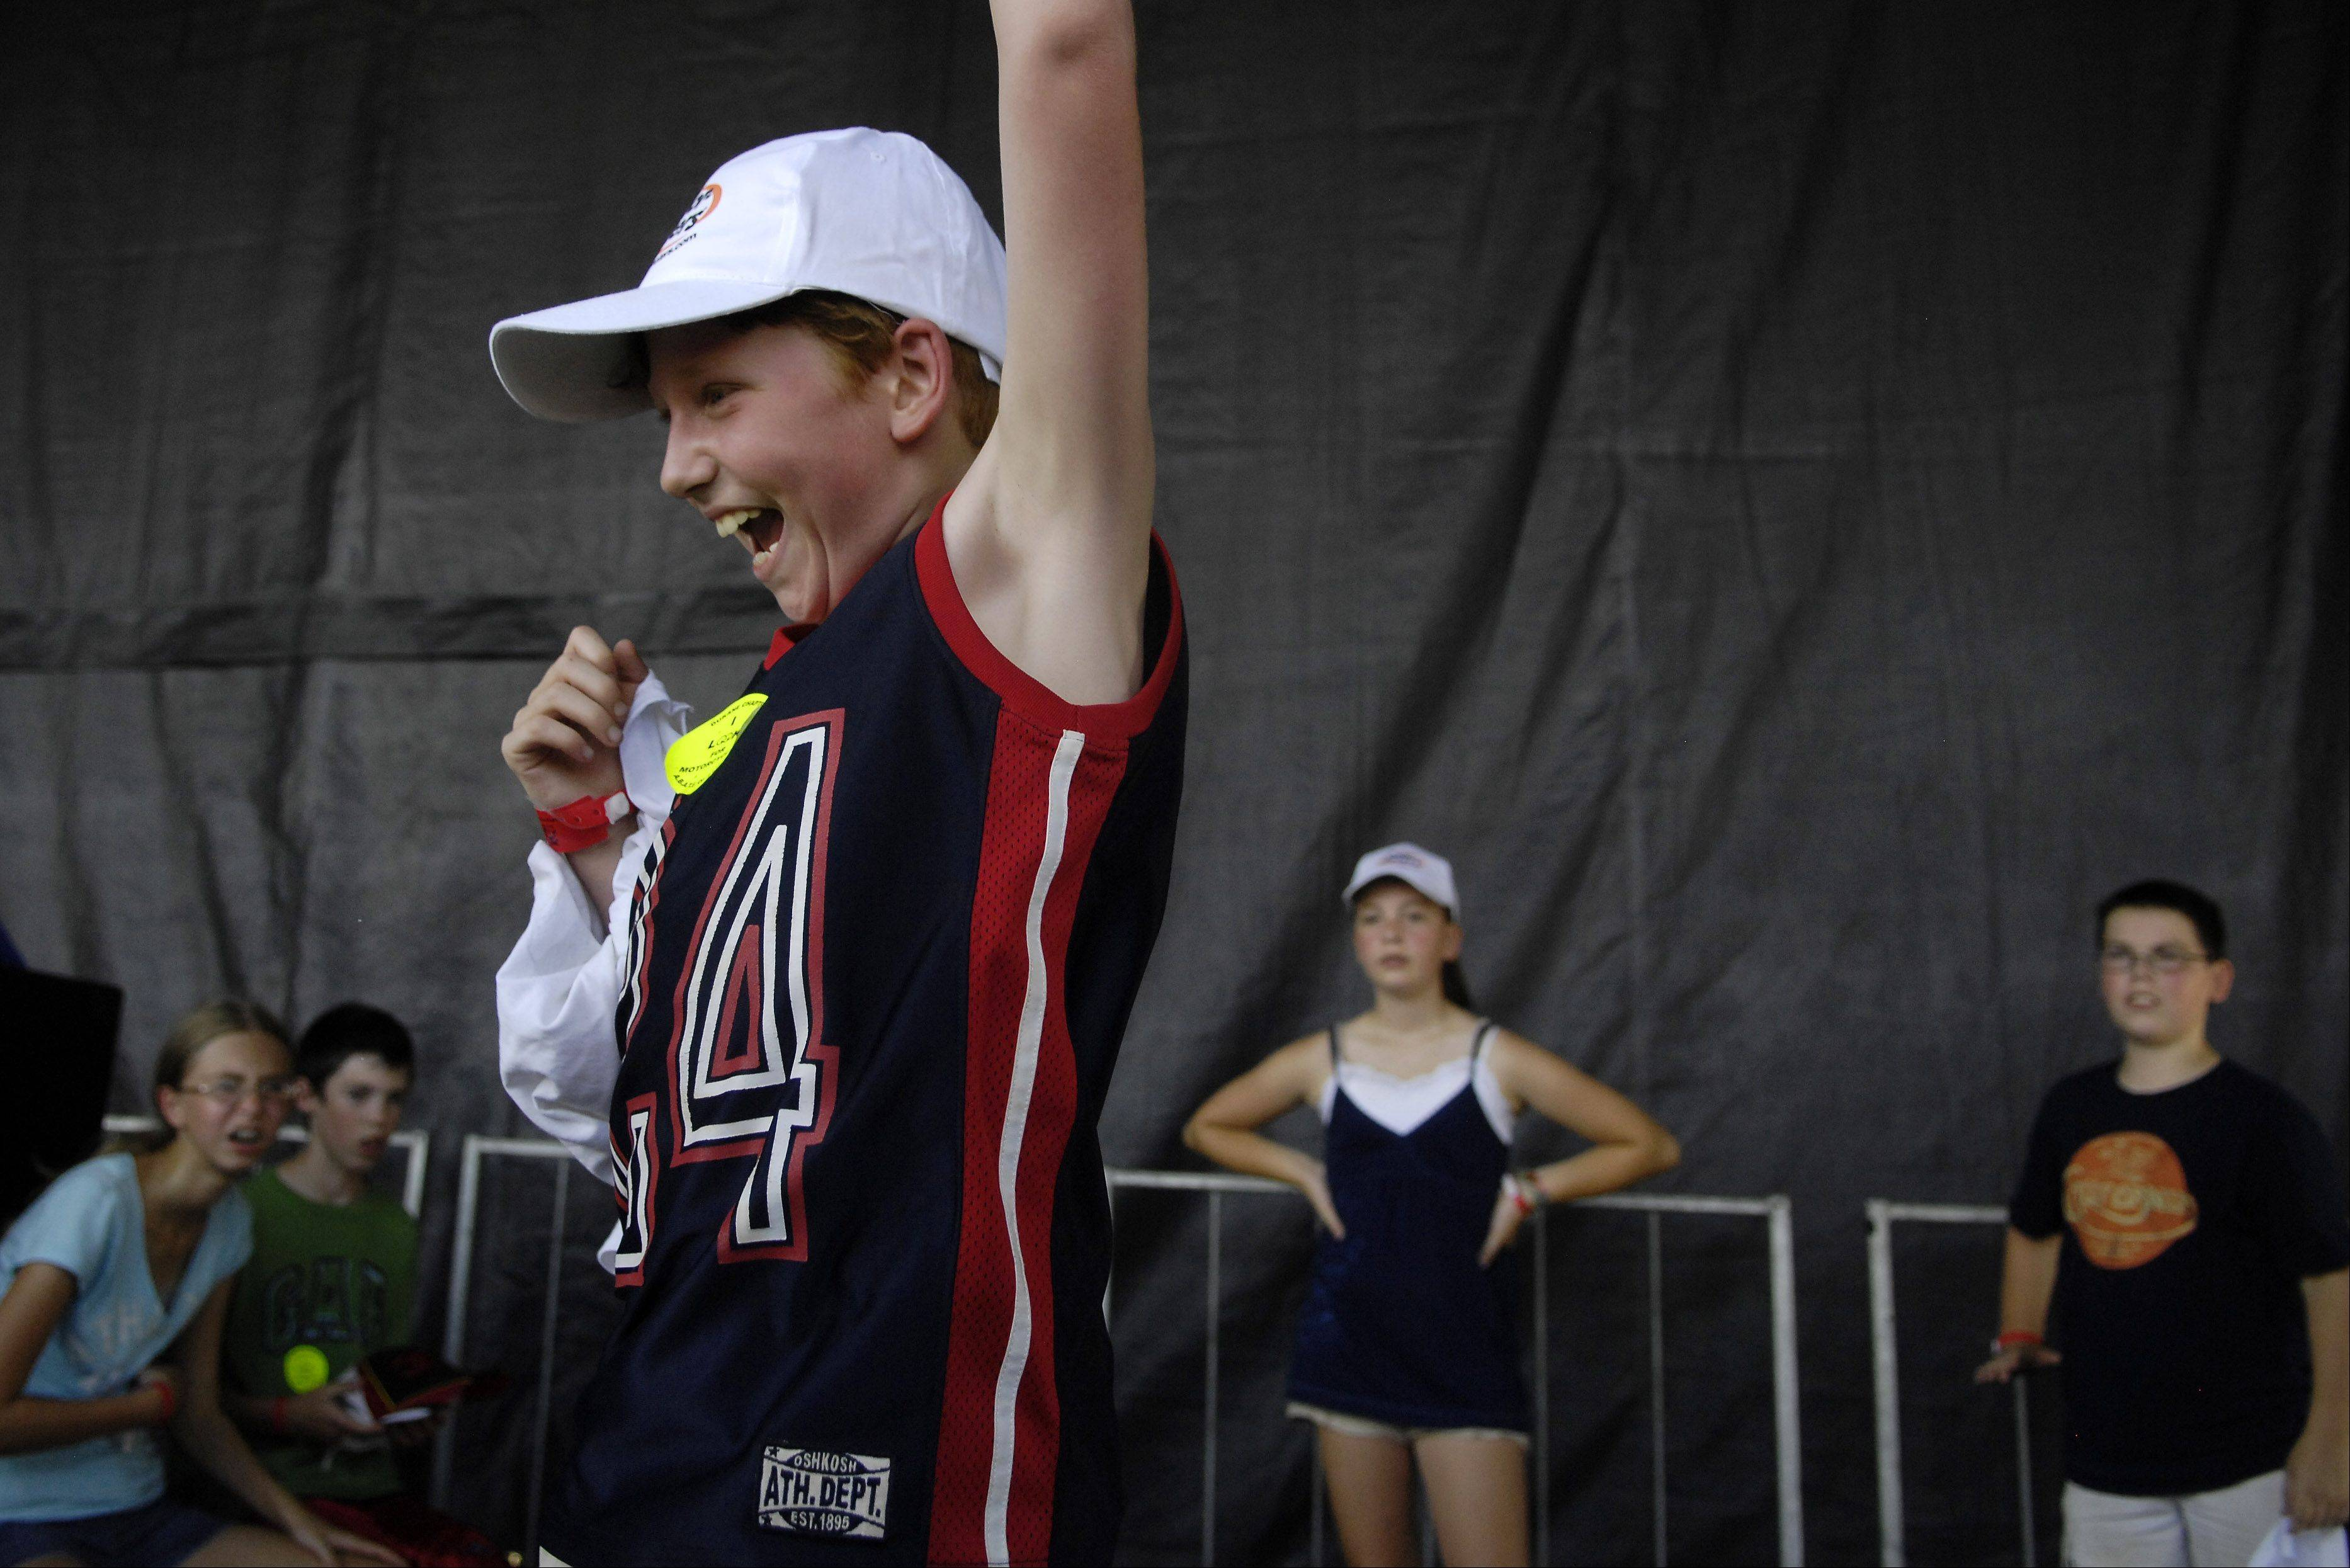 Benjamin Wehrle, 10, of West Dundee is thrilled to be given the dubious honor of being named the winner of the Odor-Eaters Rotten Sneaker Contest Thursday at the Kane County Fair in St. Charles. The upside of having the stinkiest shoes was a $200 prize. He said his secret was �all kinds of manure.�